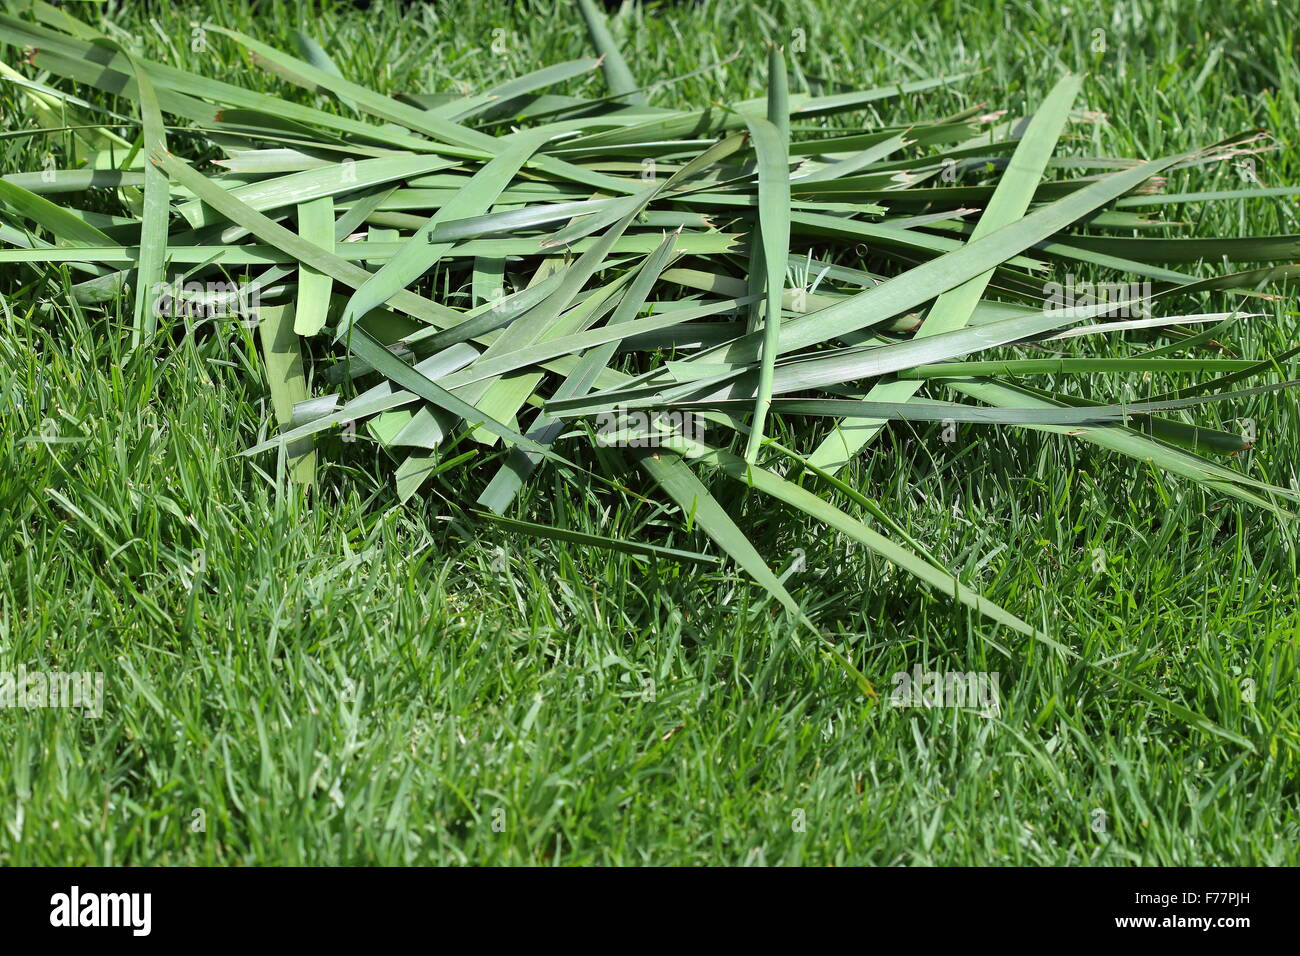 Freshly cut Lomandra grass clippings on a lawn - Stock Image